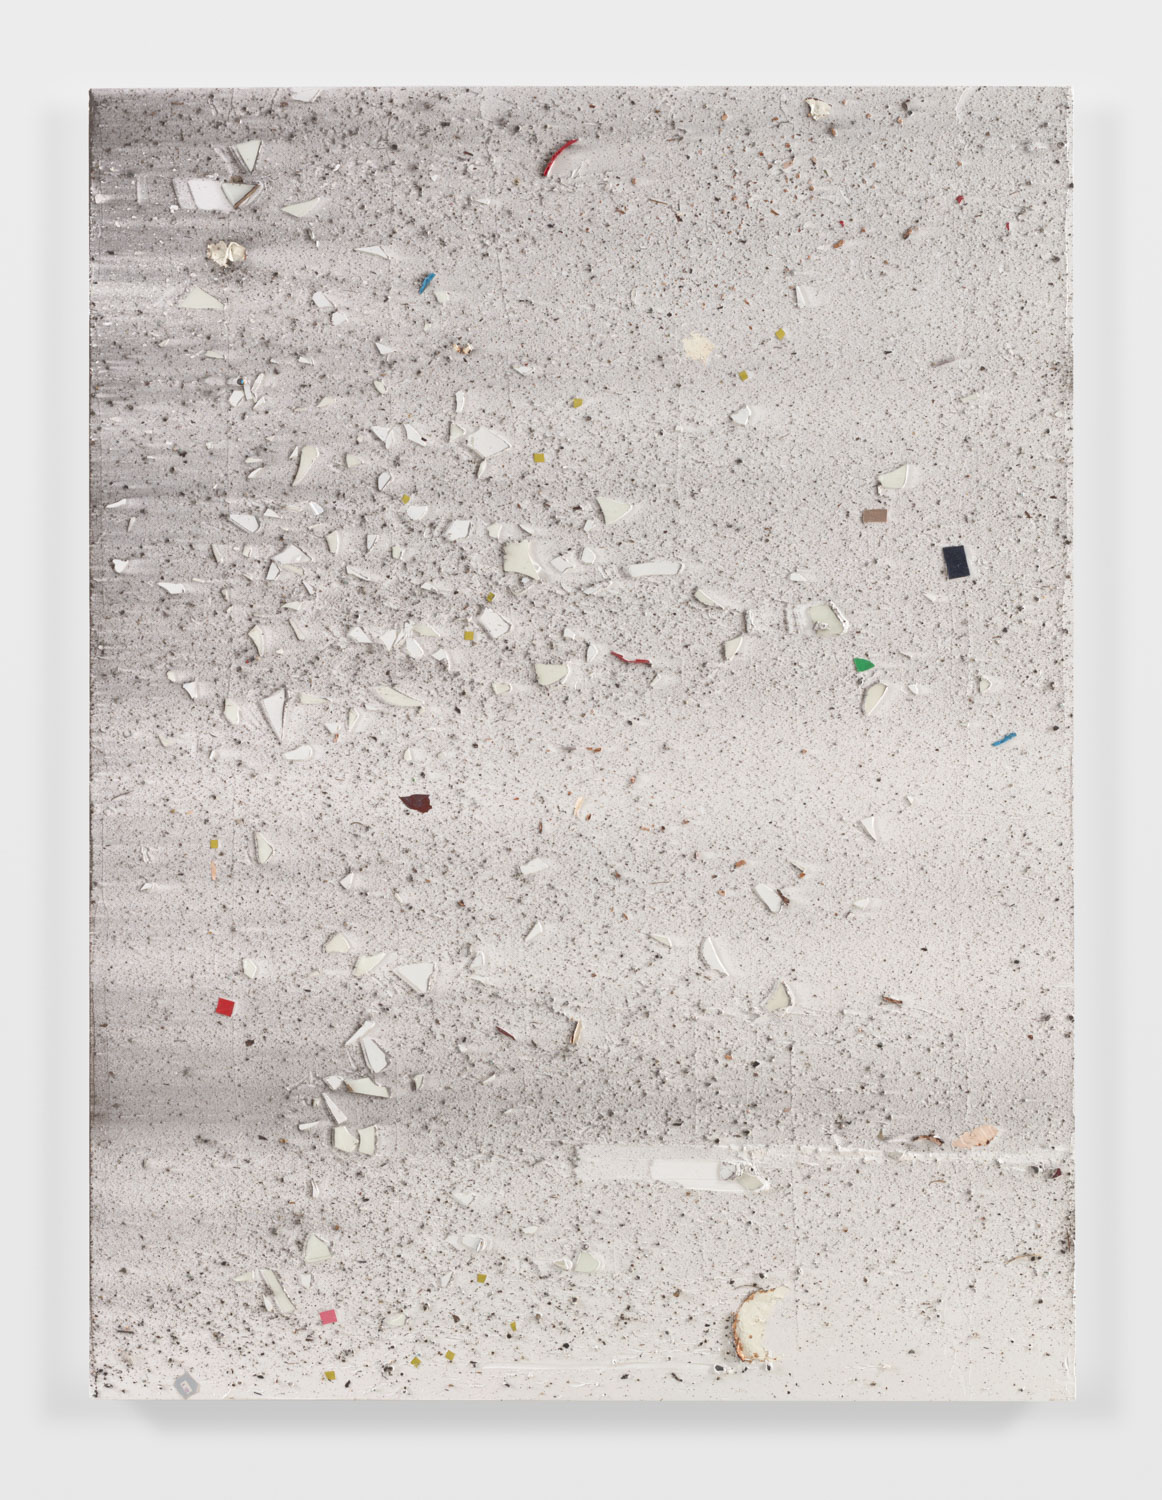 Untitled , 2015 mixed media on canvas 76 x 57 in / 193 x 144,8 cm